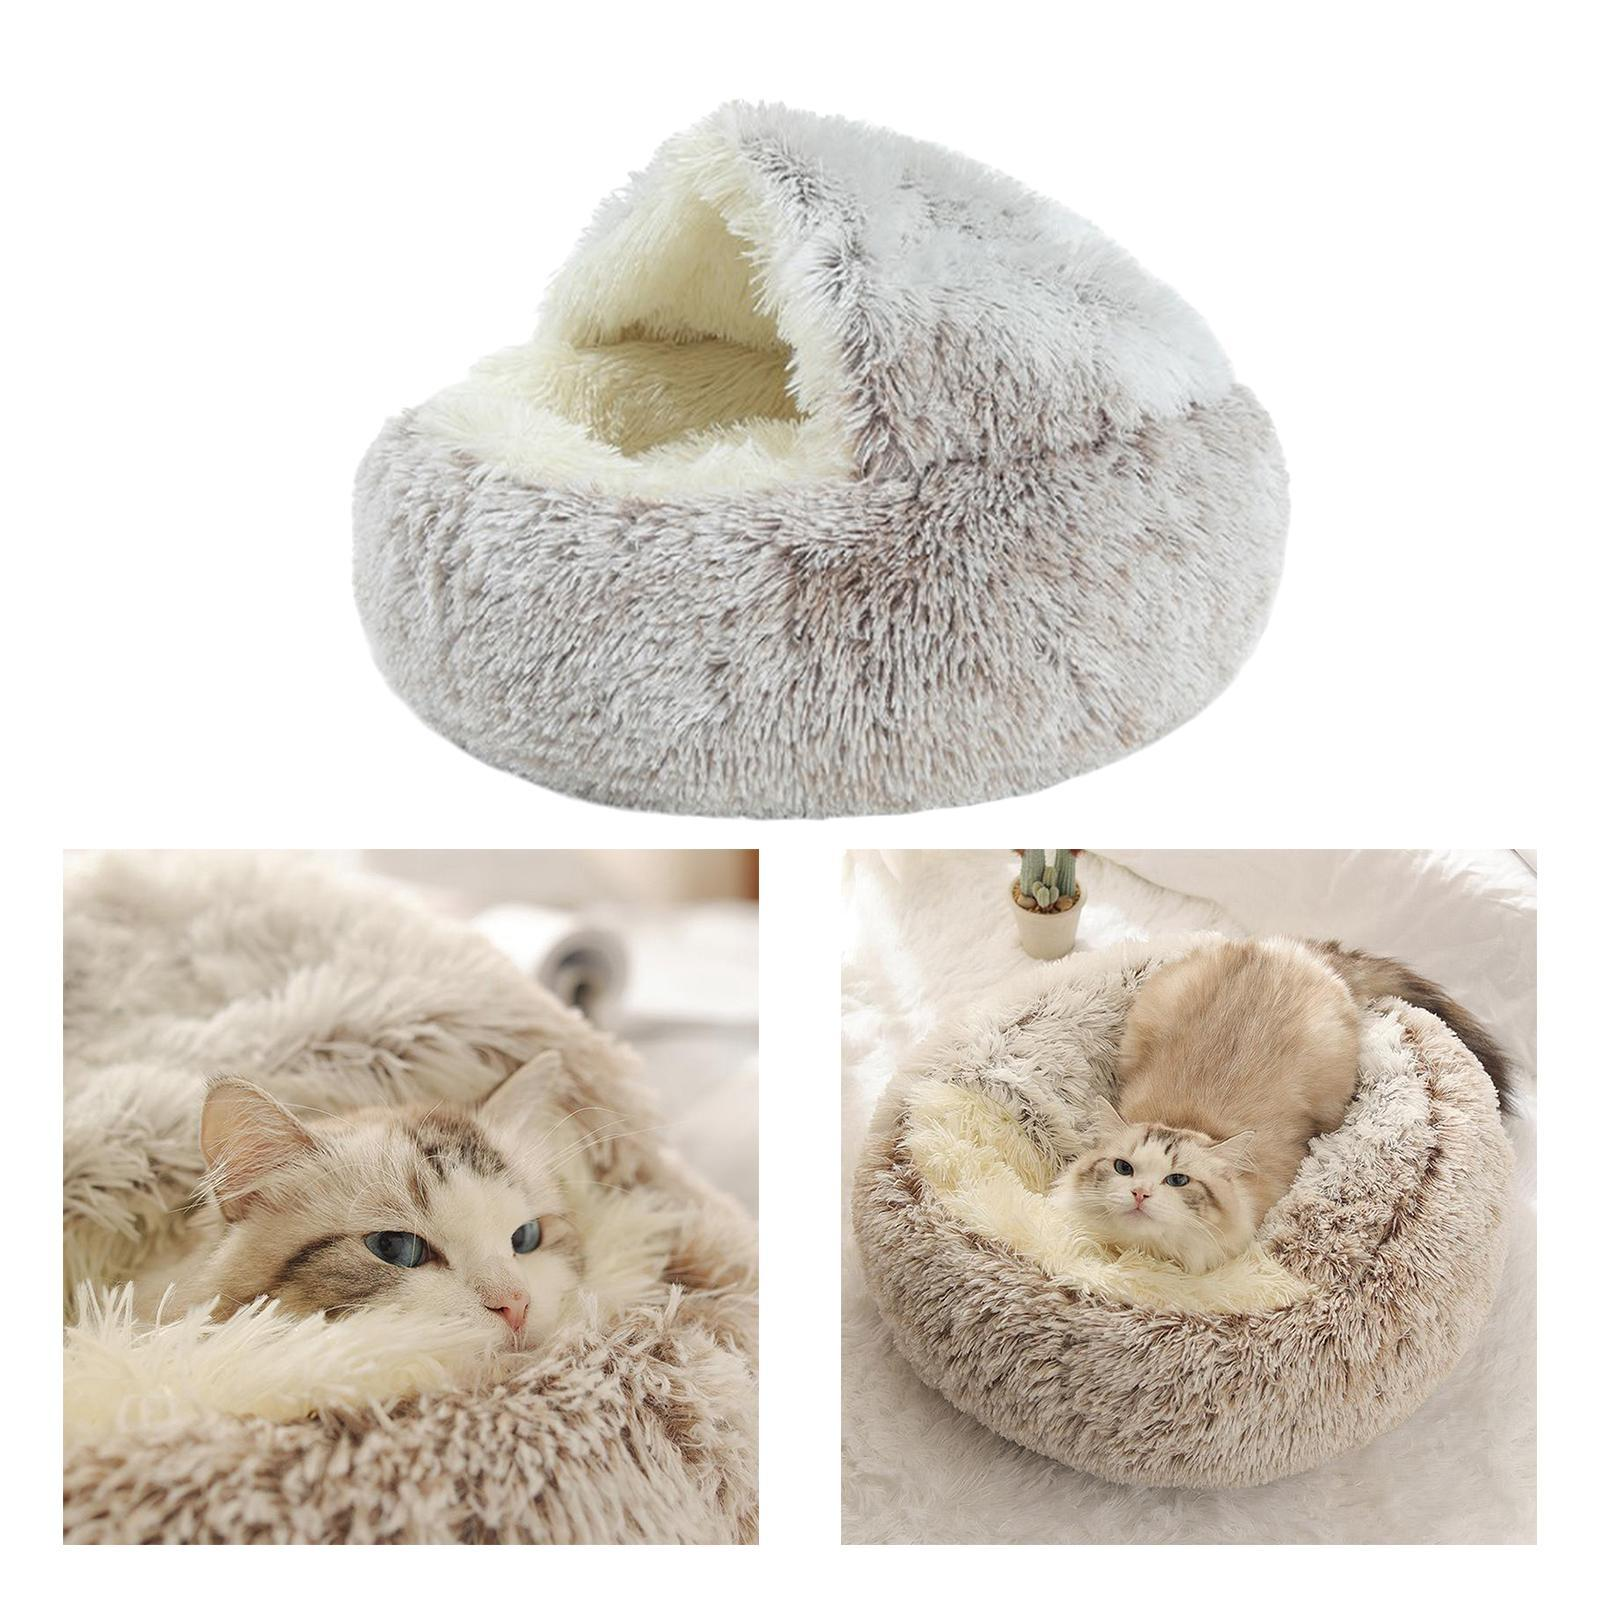 thumbnail 46 - Plush Pet Dog Cat Bed Fluffy Soft Warm Calming Bed Sleeping Kennel Cave Nest